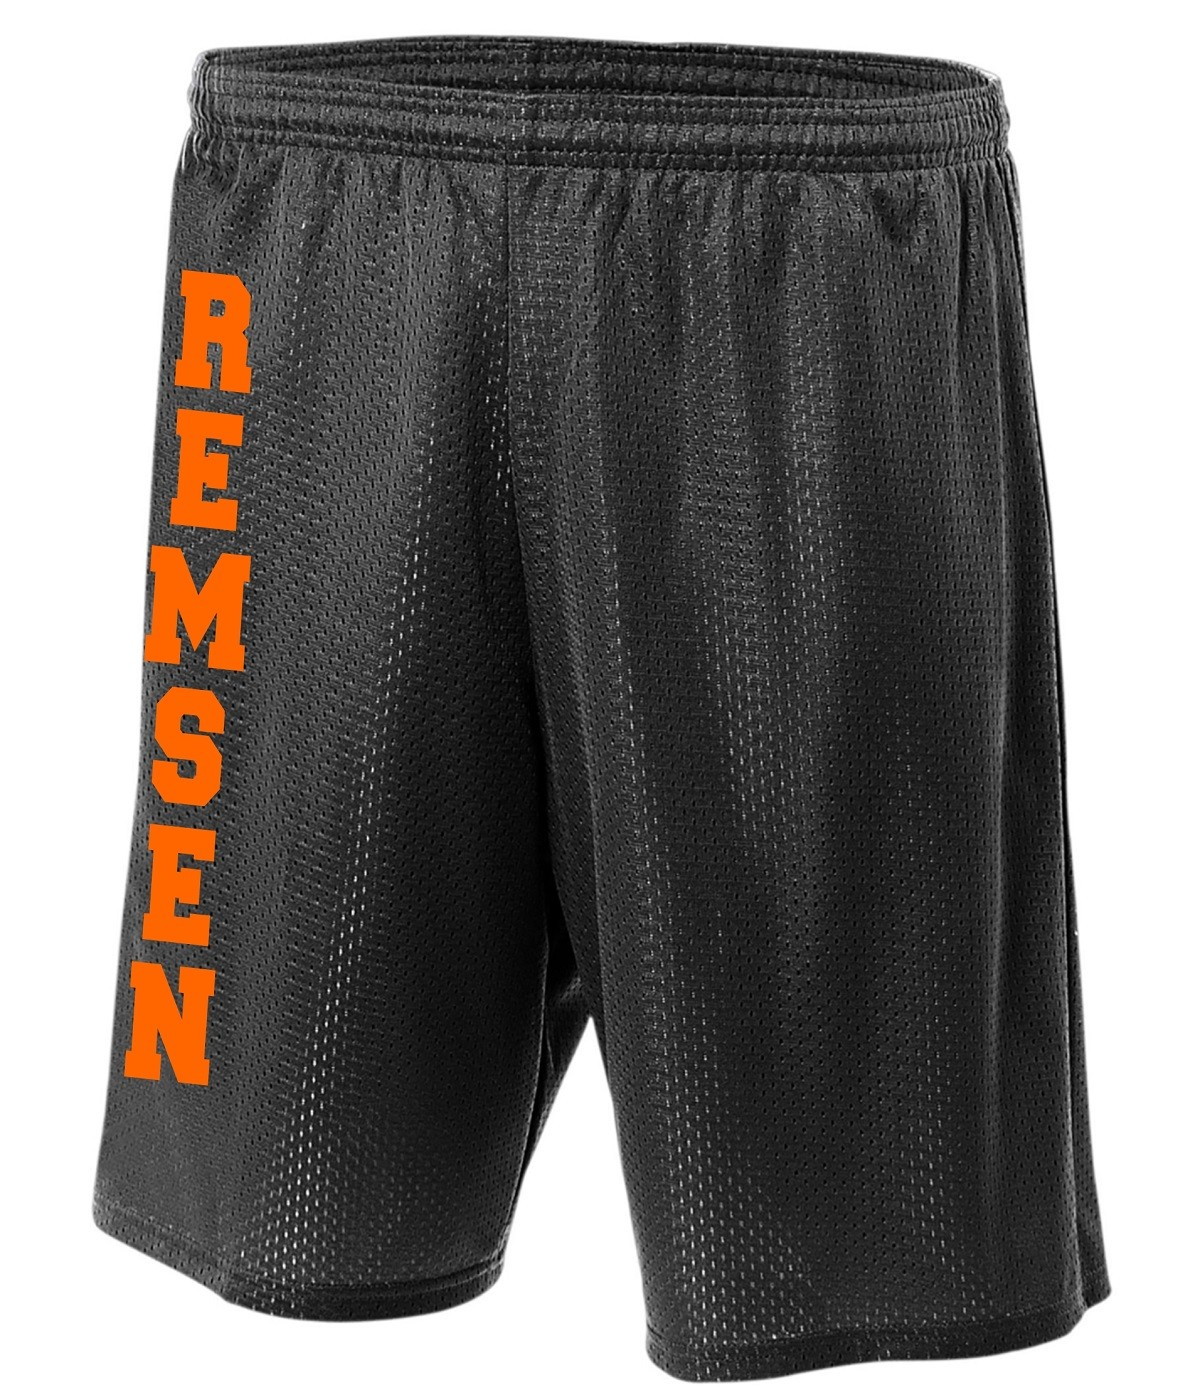 Remsen Rams Lined Tricot Mesh Shorts